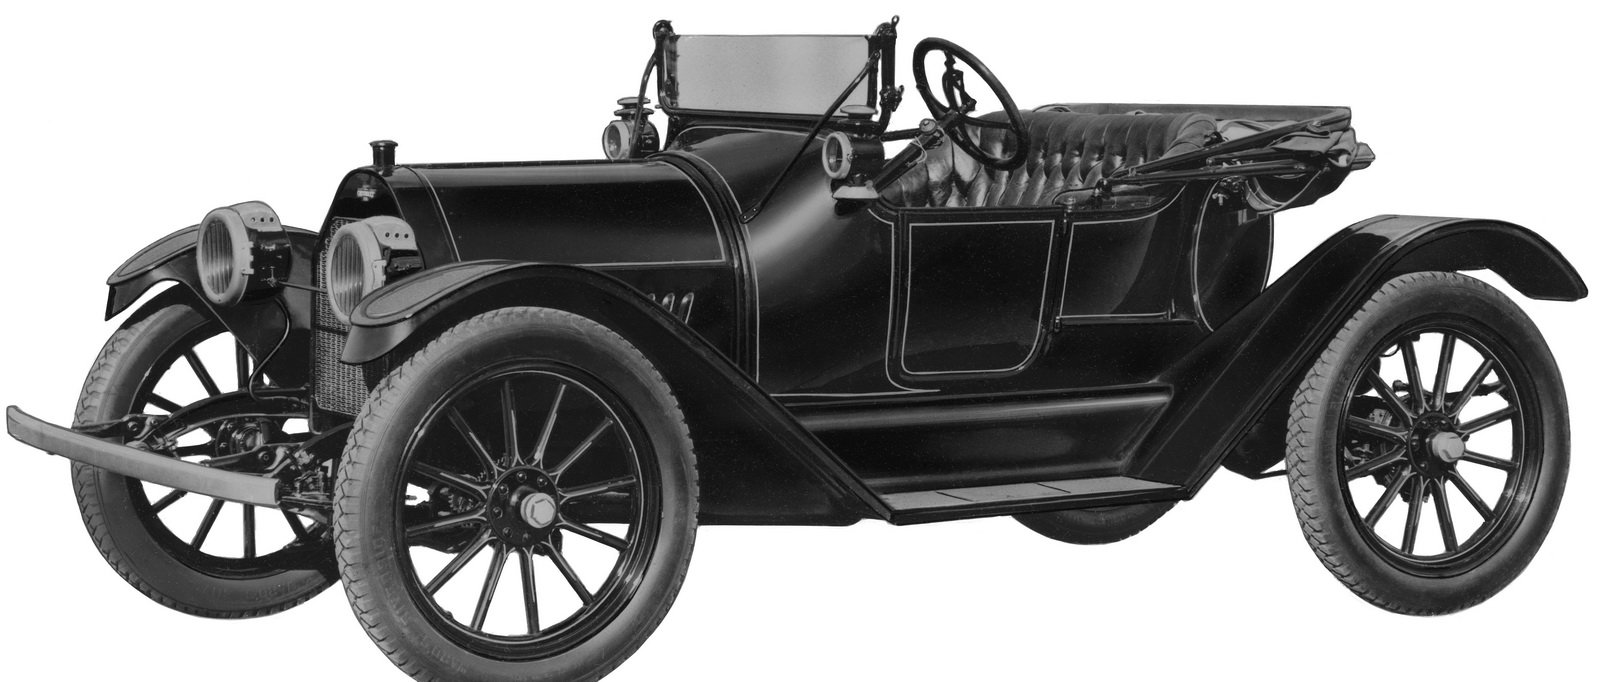 In 1913, Chevrolet co-founder William C. Durant introduced the signature Chevy bowtie on the 1914 Chevrolet H-2 Royal Mail and the H-4 Baby Grand, centered at the front of both models.